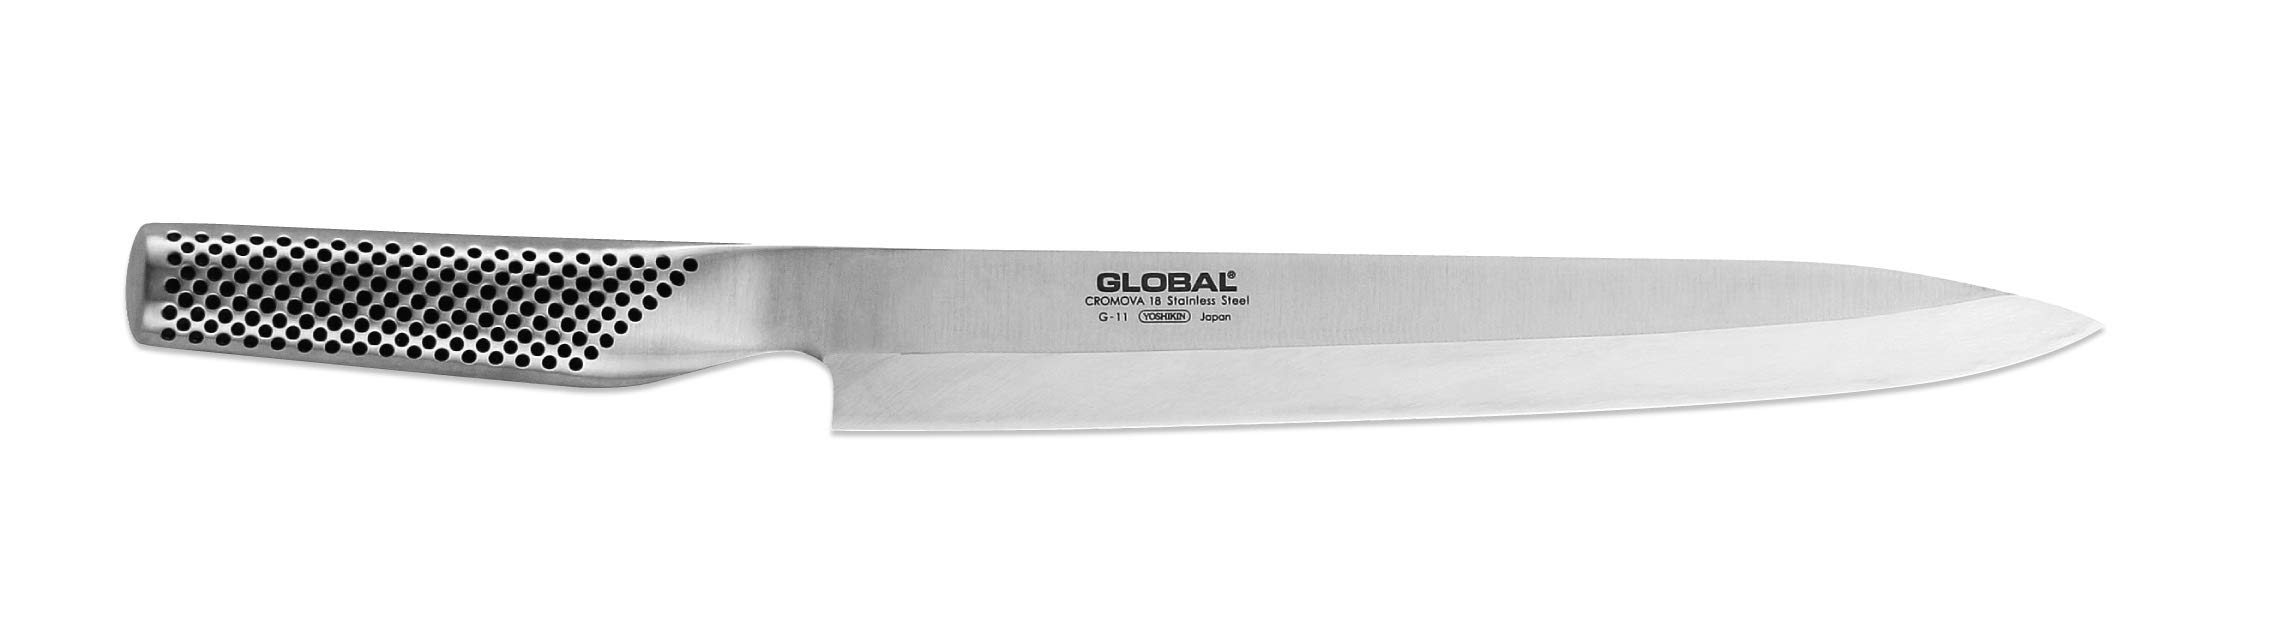 Global G-11 Yanagi Sashimi Knife, 10-Inch by Global